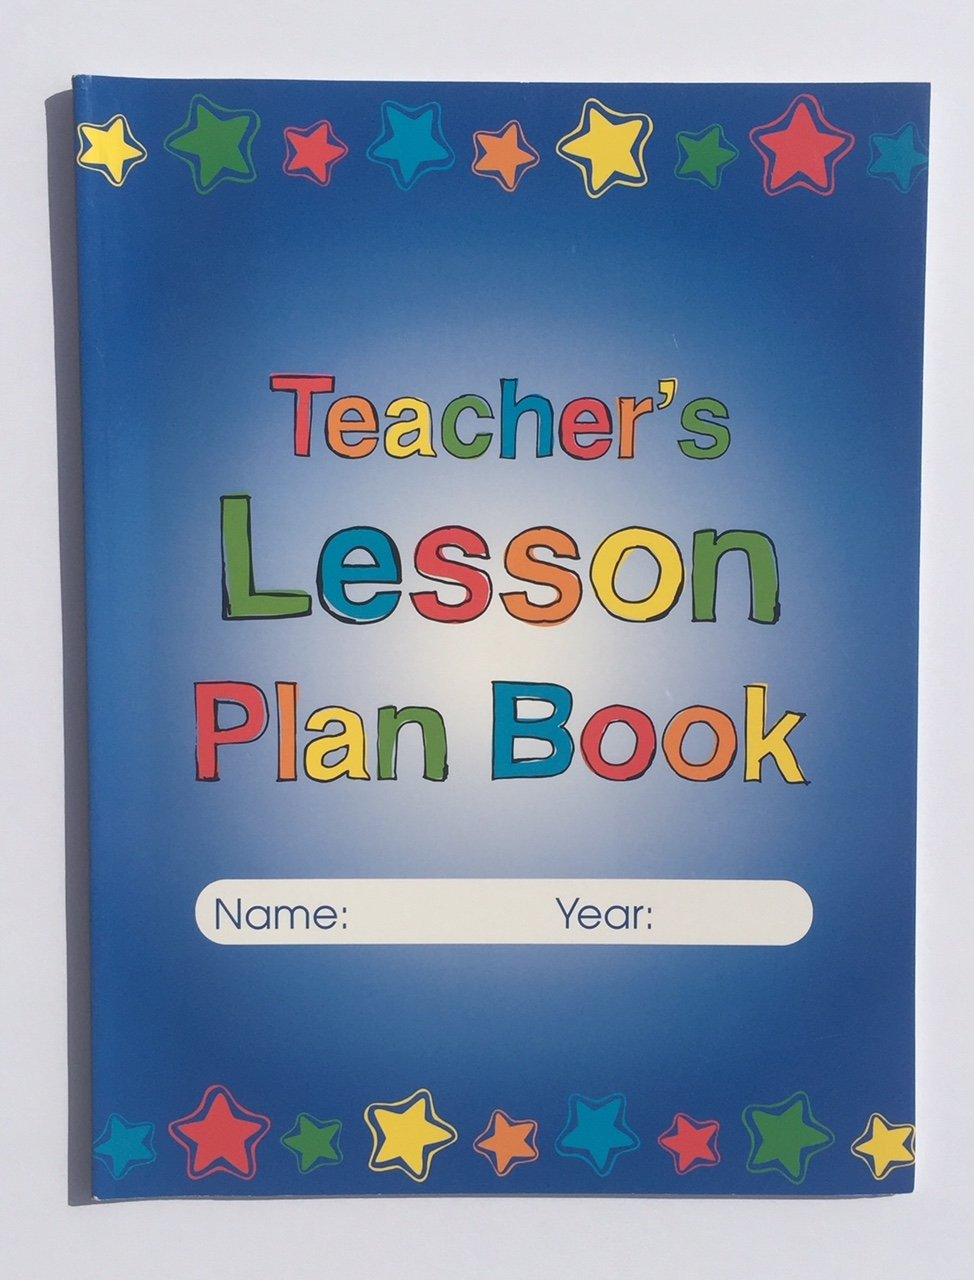 Teacher Grade Lesson Plan Book Teaching School Planner Student Hall Passes Classroom Homeschool Supplies Gifts 5 Piece Set by McCormick Imports (Image #3)